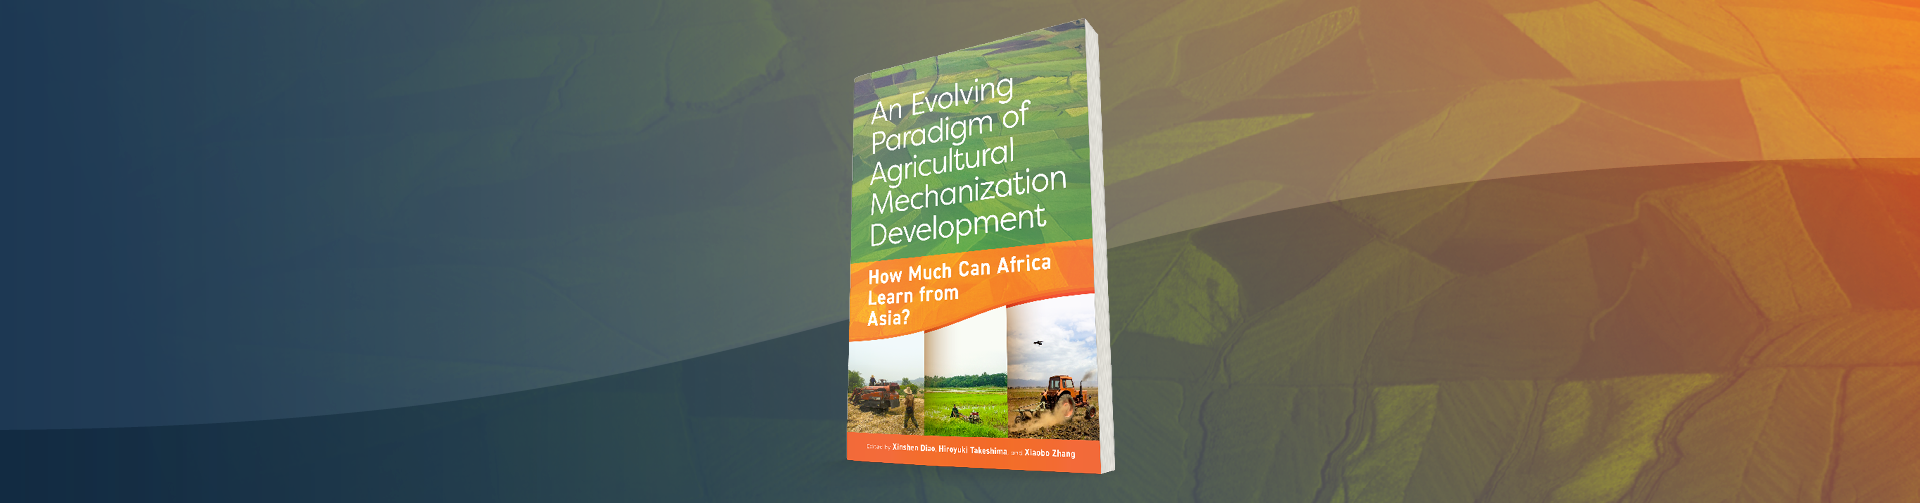 How much can Africa learn from Asia about agricultural mechanization?